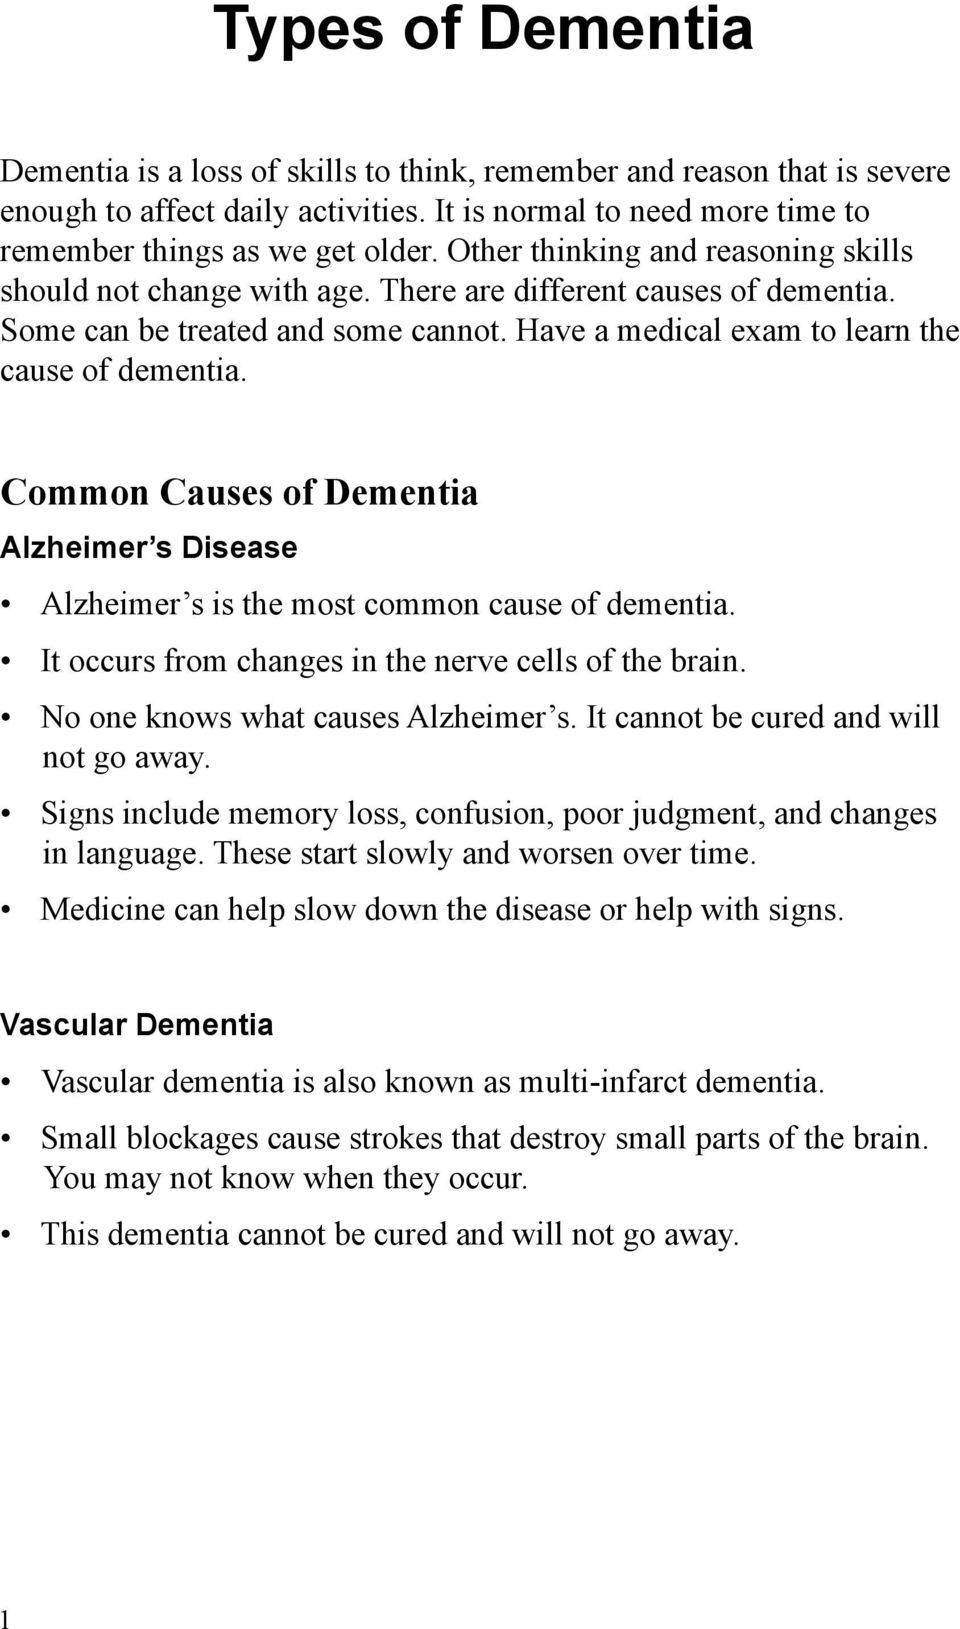 Common Causes of Dementia Alzheimer s Disease Alzheimer s is the most common cause of dementia. It occurs from changes in the nerve cells of the brain. No one knows what causes Alzheimer s.